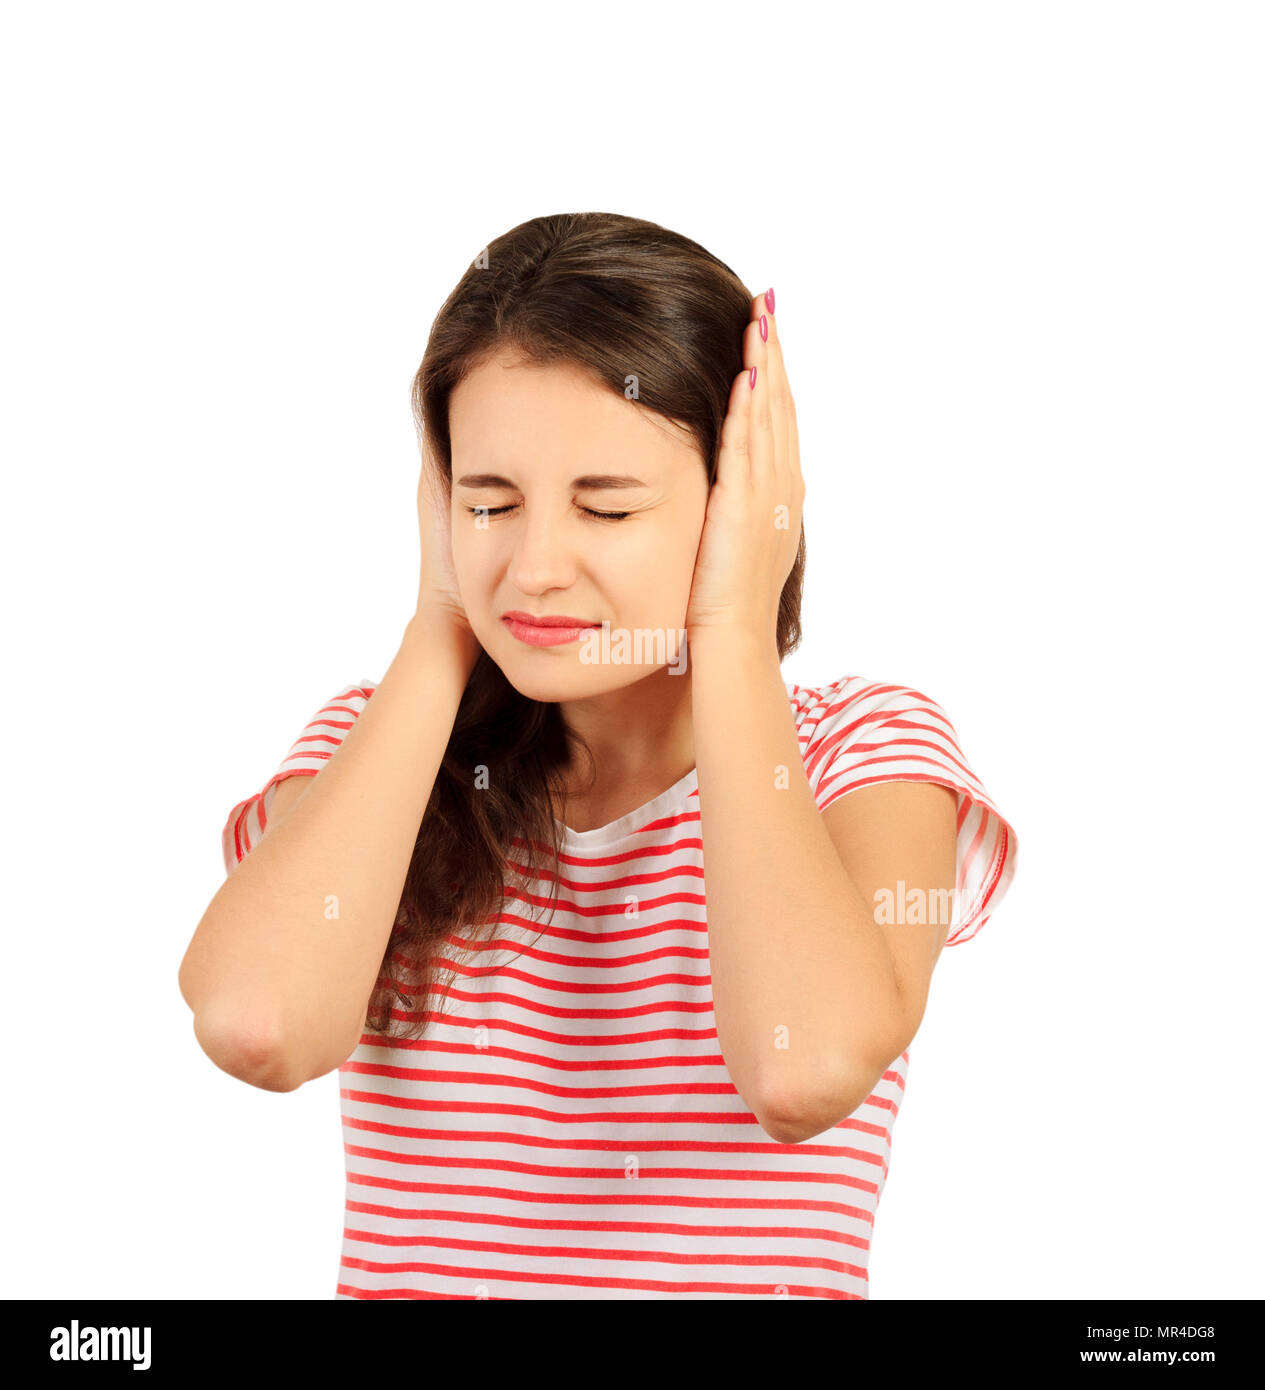 portrait annoyed girl has closed ears hands. emotional girl isolated on white background. - Stock Image